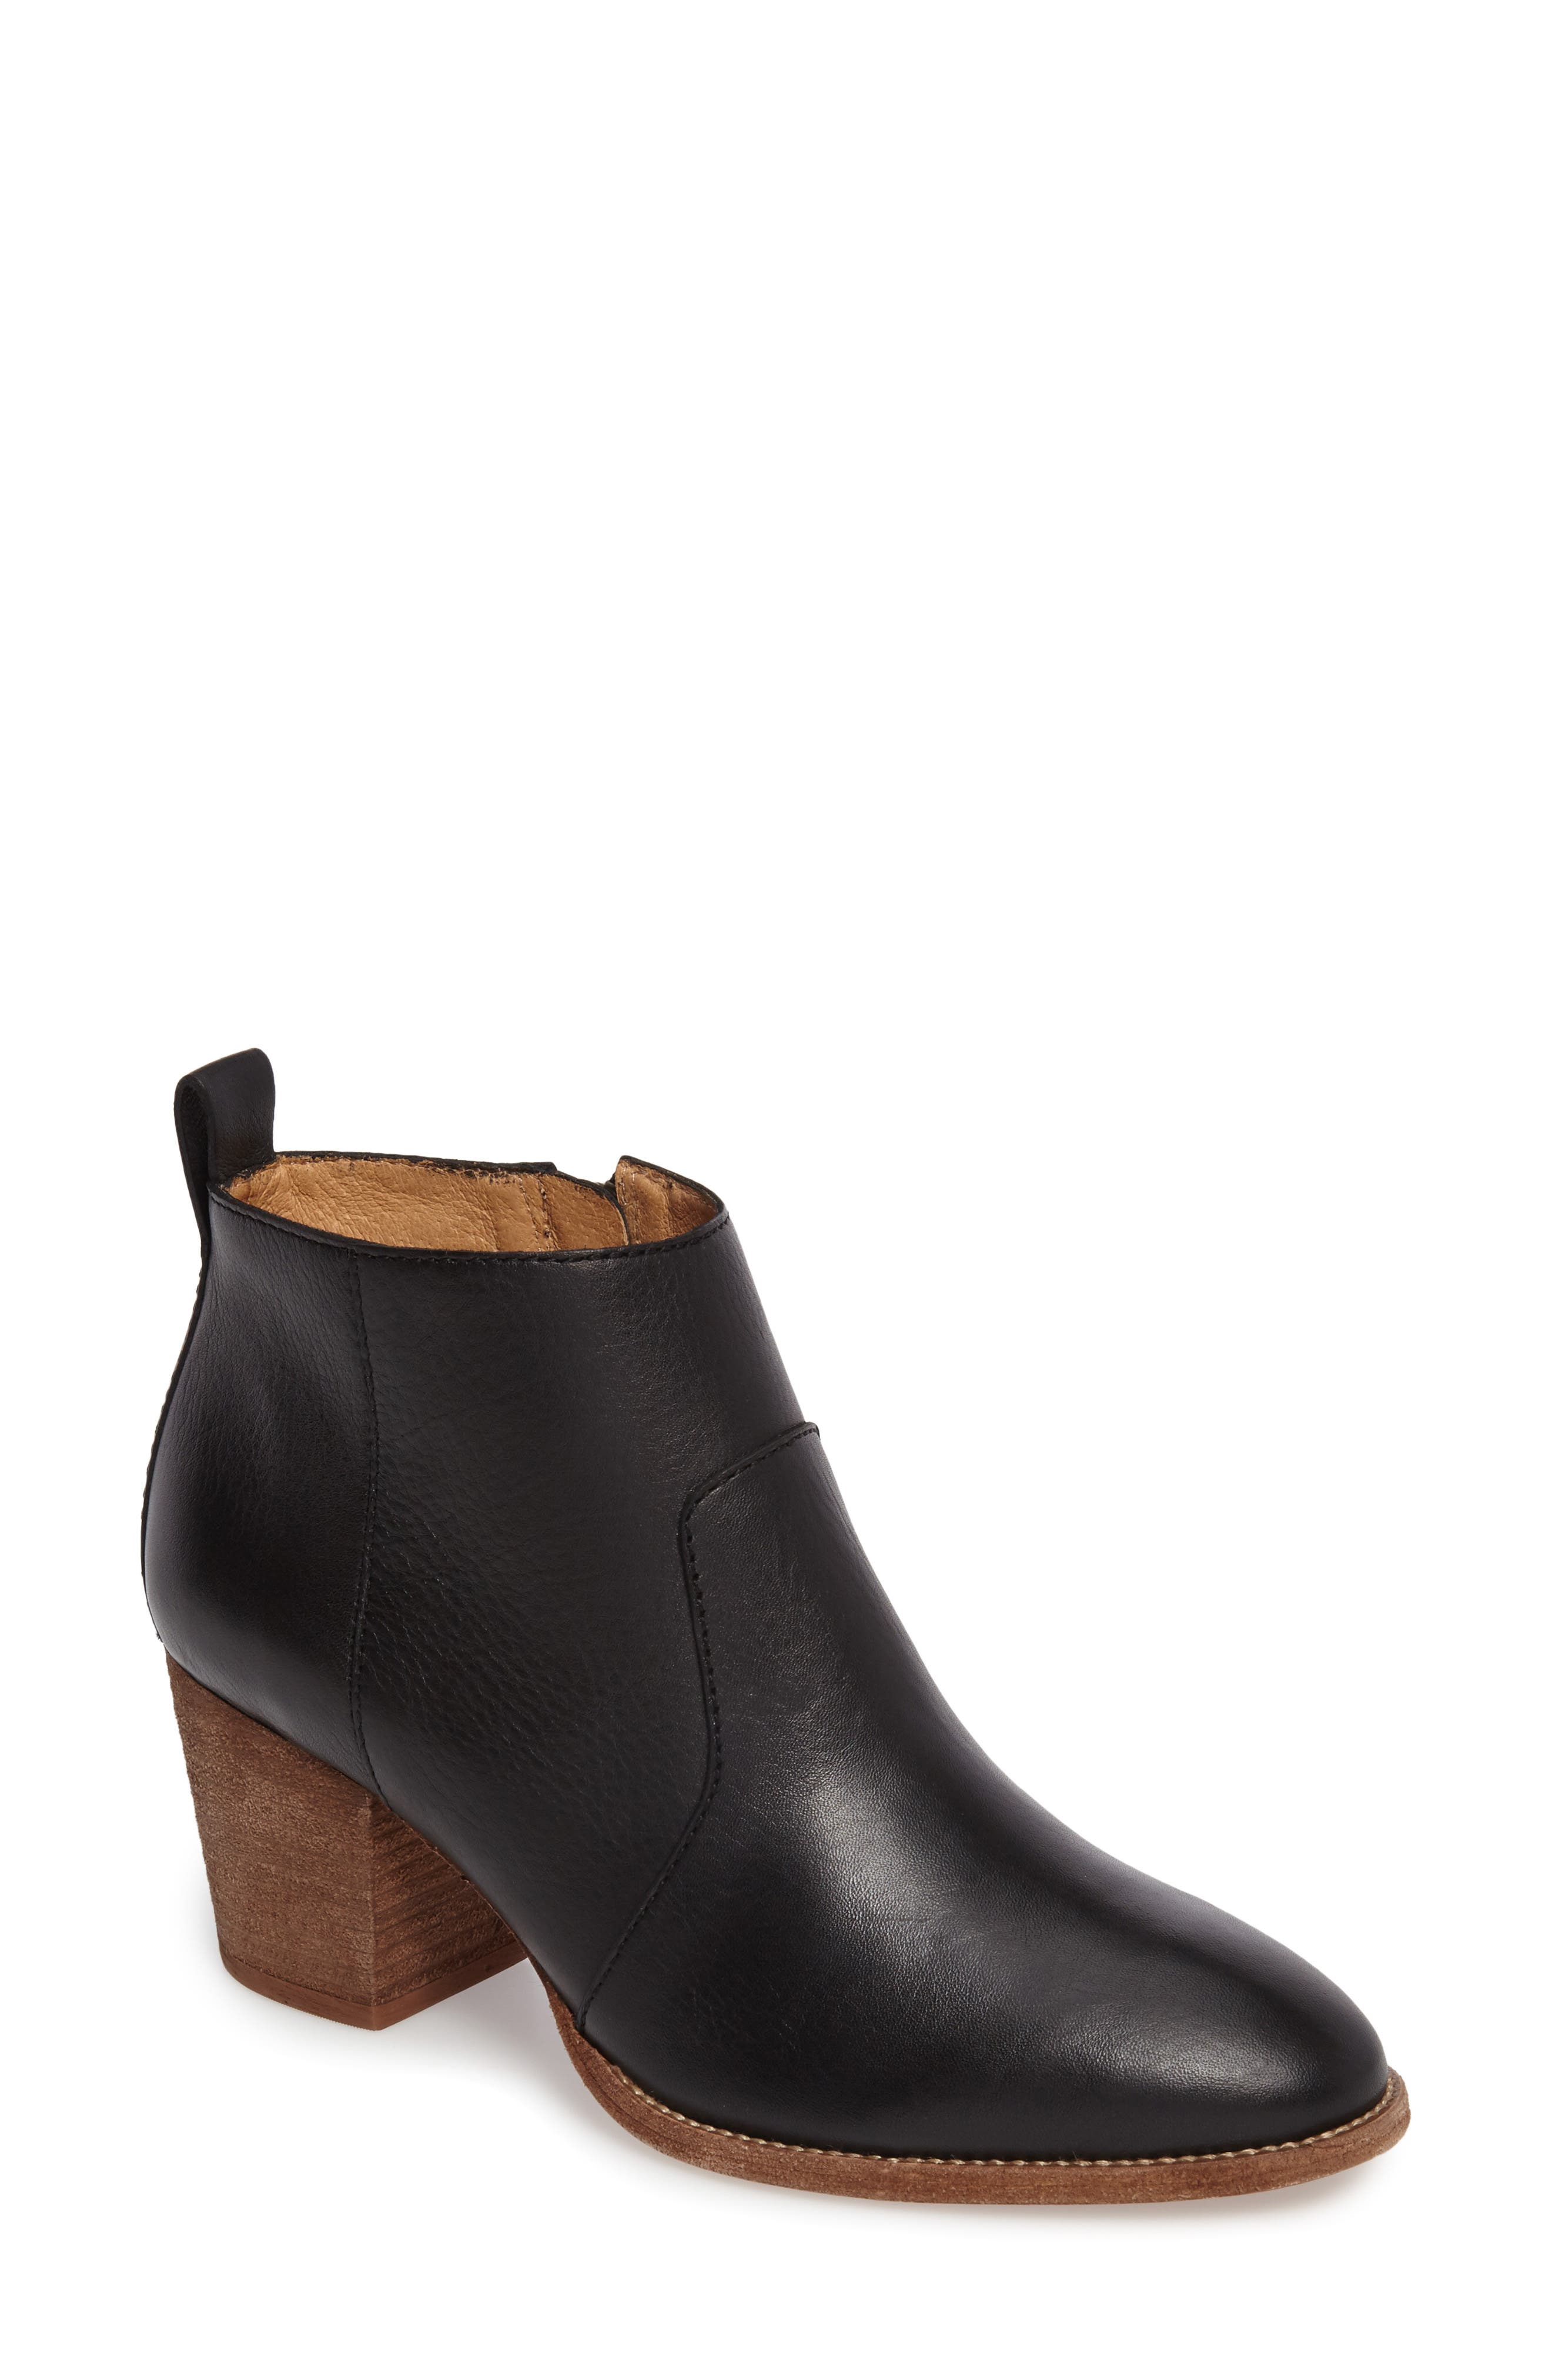 Brenner Bootie,                             Main thumbnail 1, color,                             001